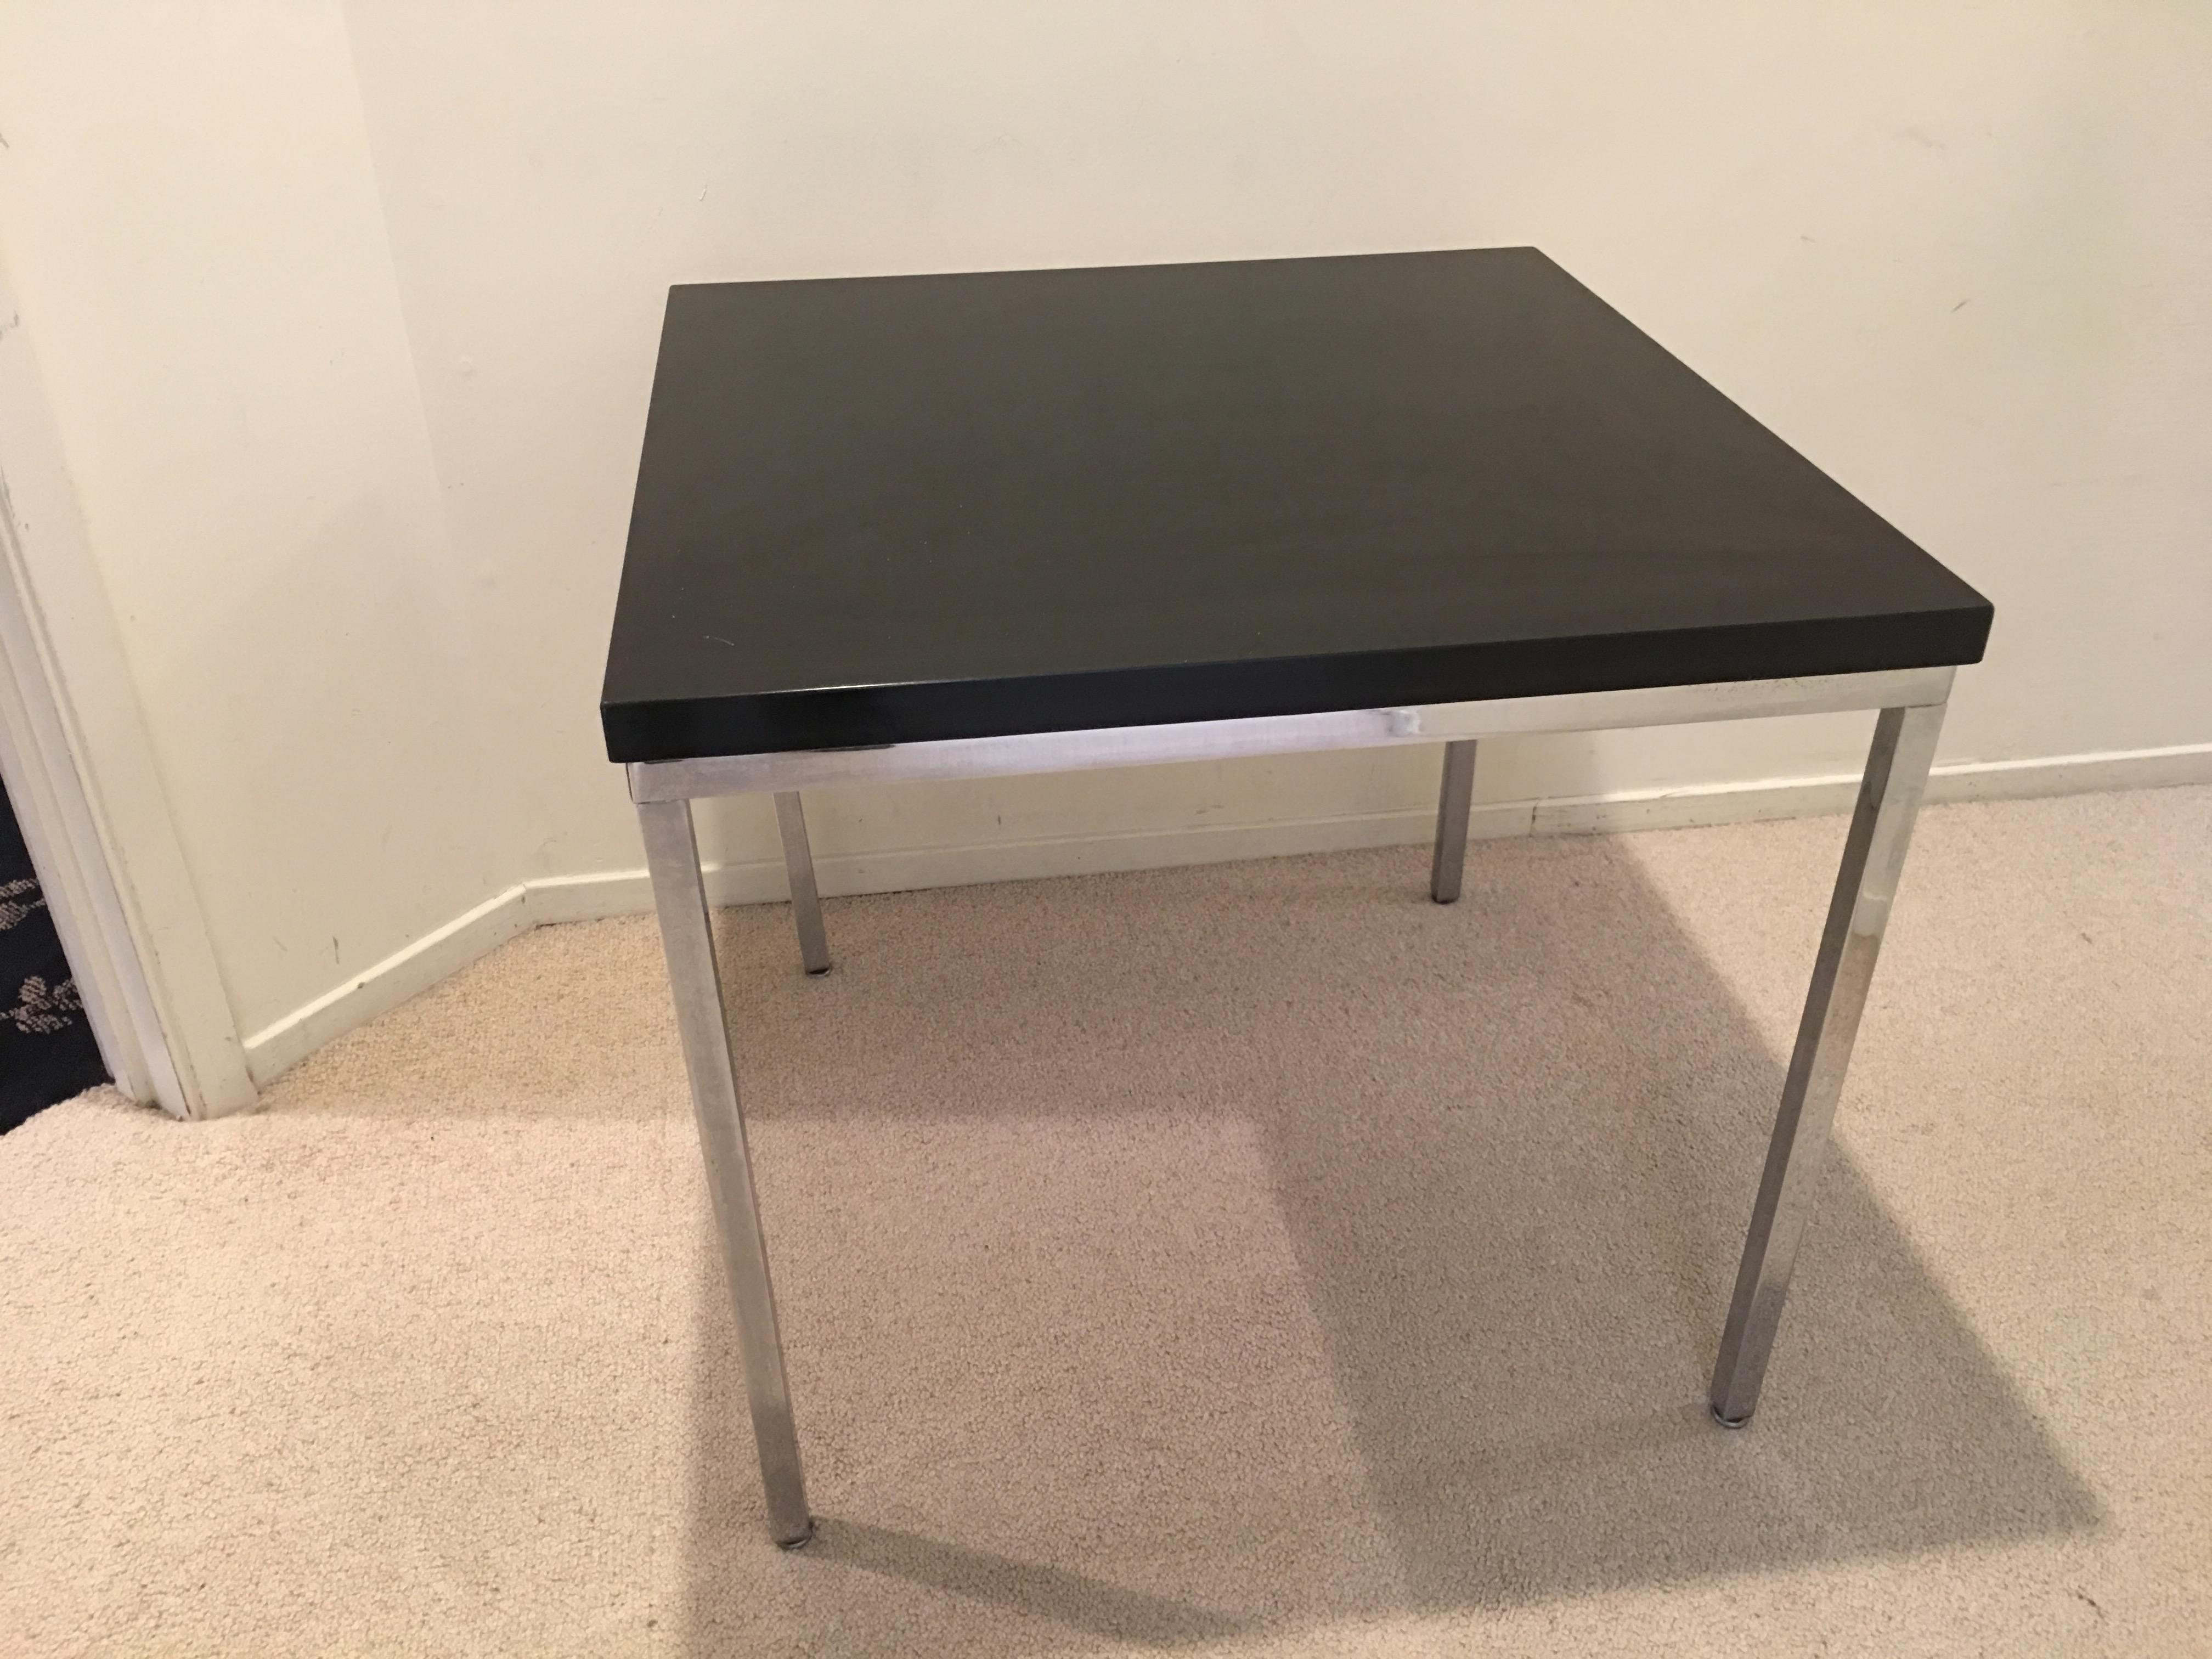 This Original Florence Knoll Coffee Table Is In Chrome With A Black Top.  The Beauty